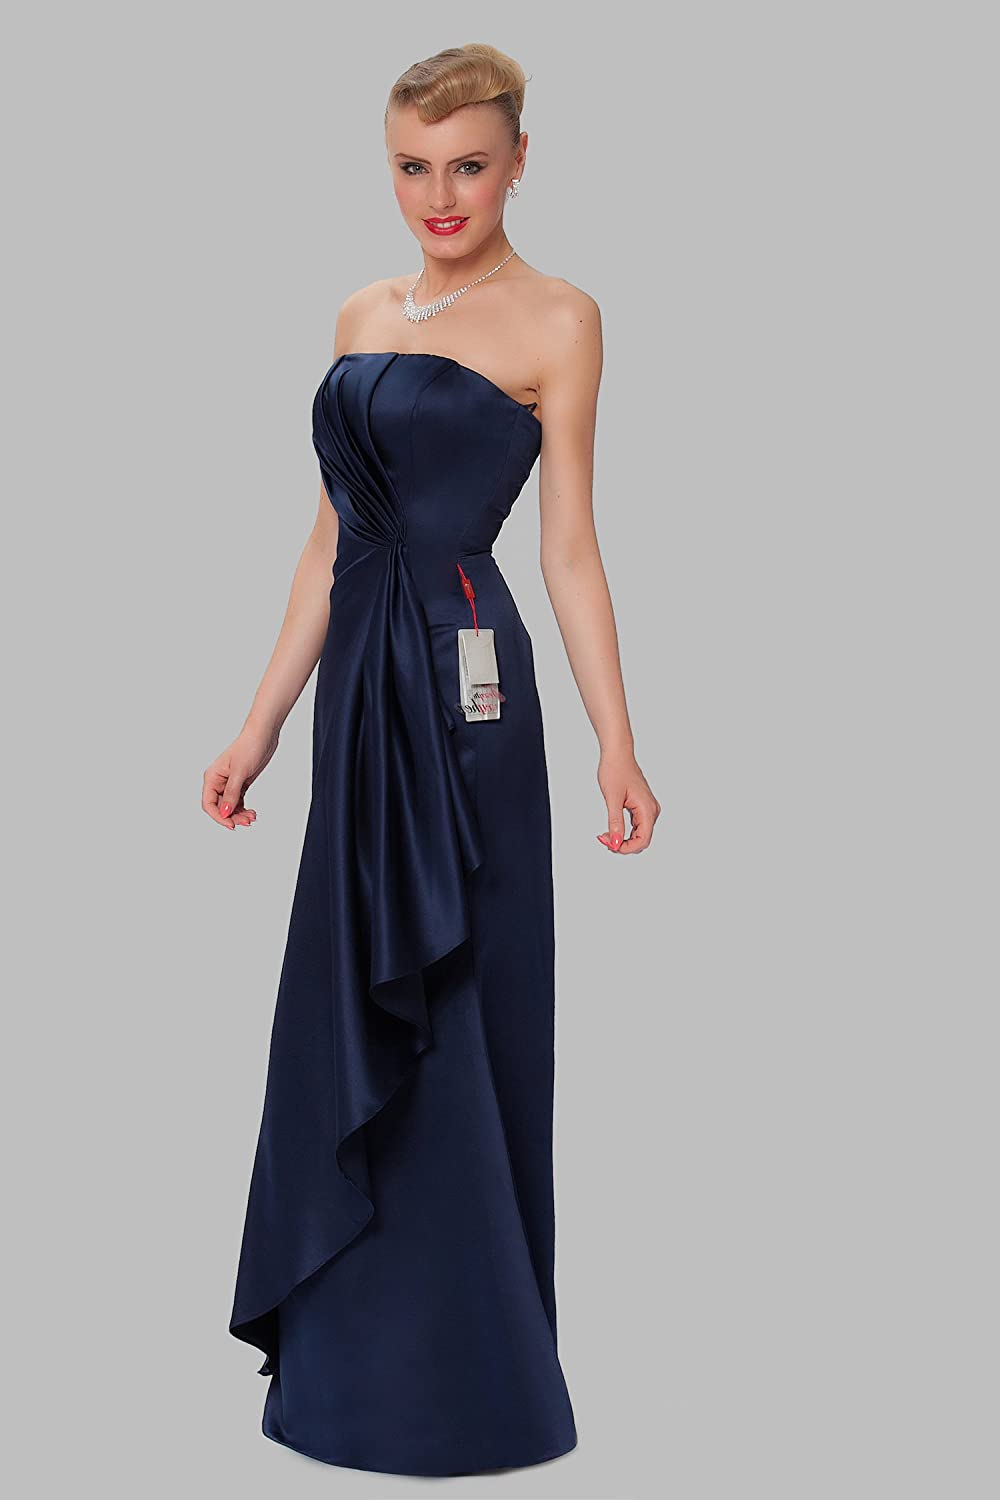 SEXYHER Gorgeous Full Length Strapless Bridesmaids Formal Evening Dress - EDJ1611